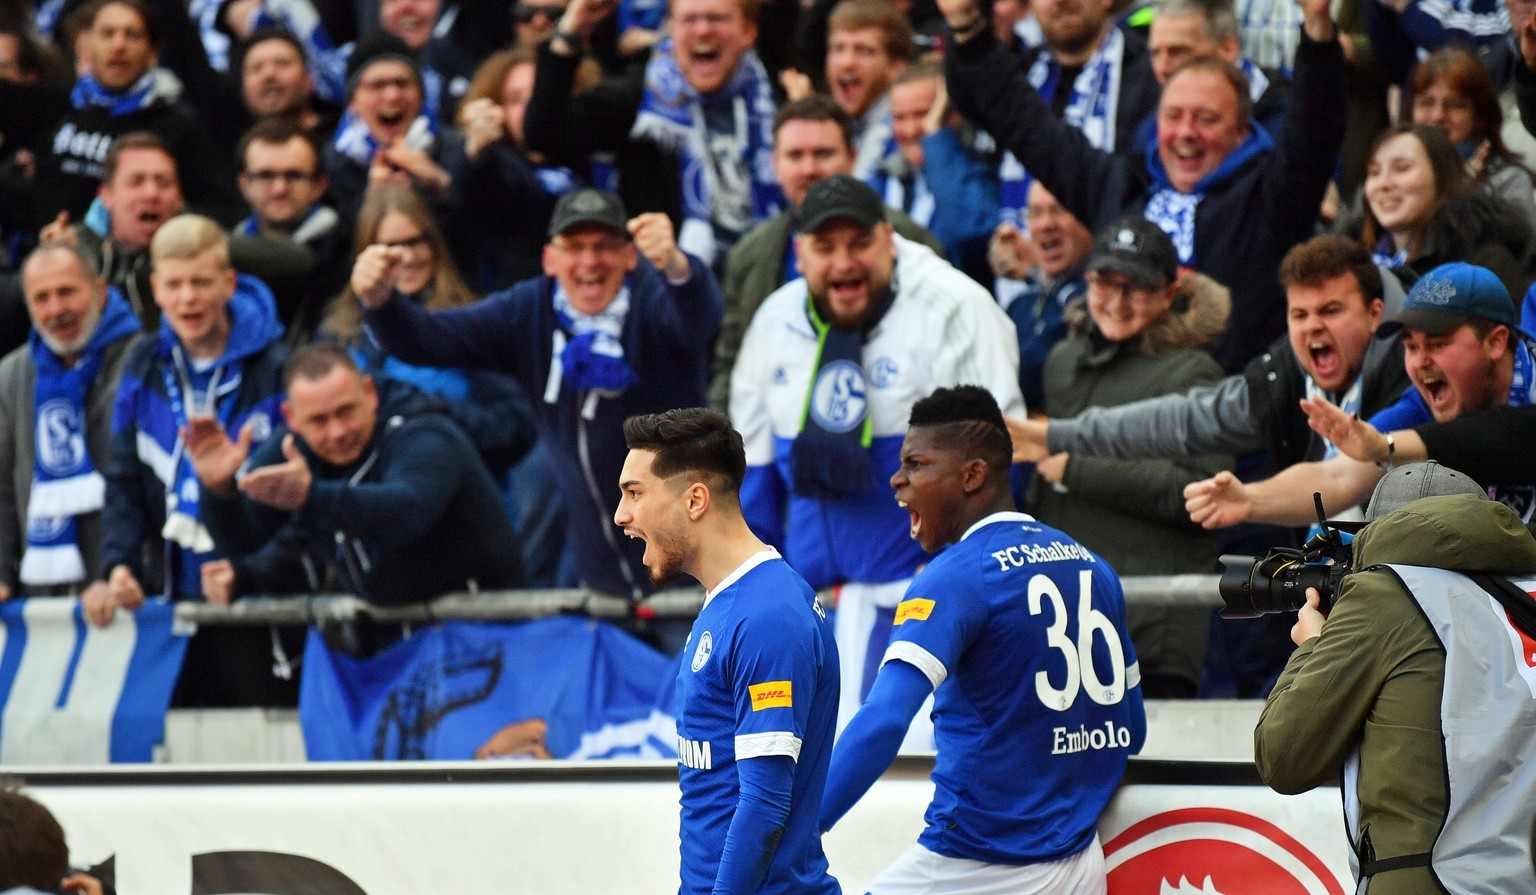 epa07476406 Schalke's Suat Serdar (L) celebrates with his teammate Breel Embolo (R) after scoring the 1-0 lead during the German Bundesliga soccer match between Hannover 96 and FC Schalke 04 in Hanover, Germany, 31 March 2019.  EPA/DAVID HECKER CONDITIONS - ATTENTION: The DFL regulations prohibit any use of photographs as image sequences and/or quasi-video.